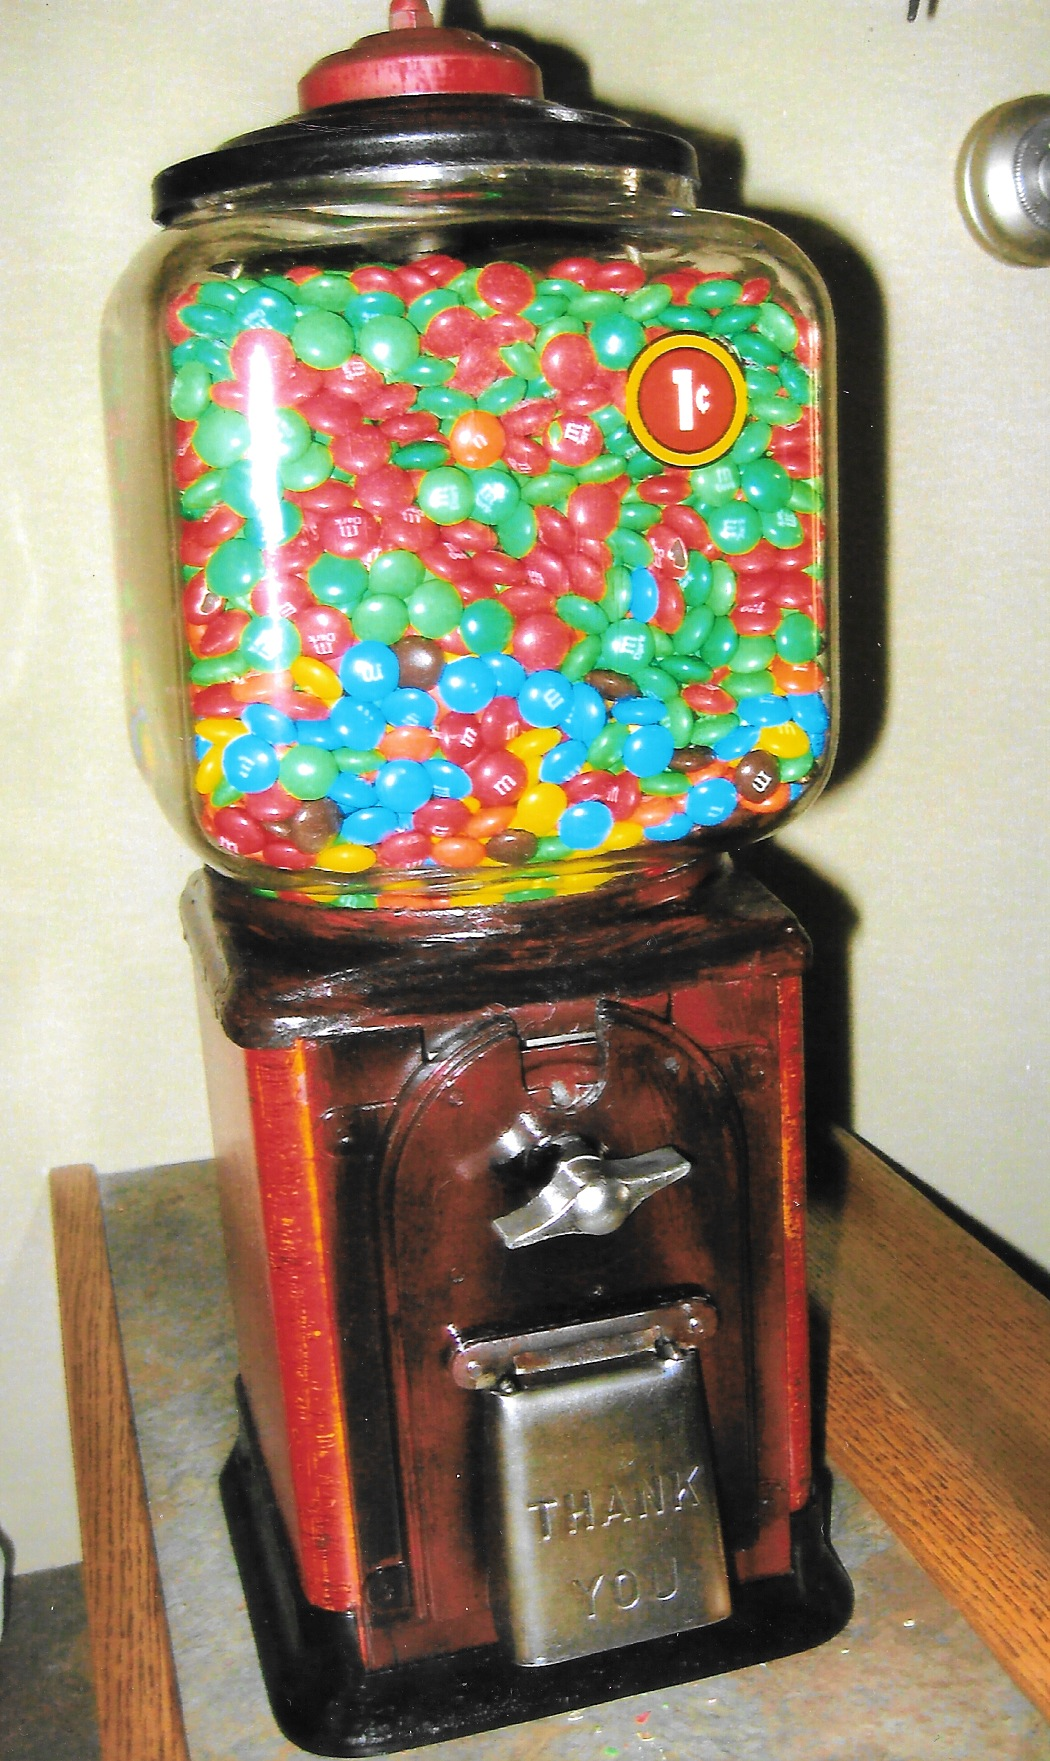 Gumball Machine.jpeg